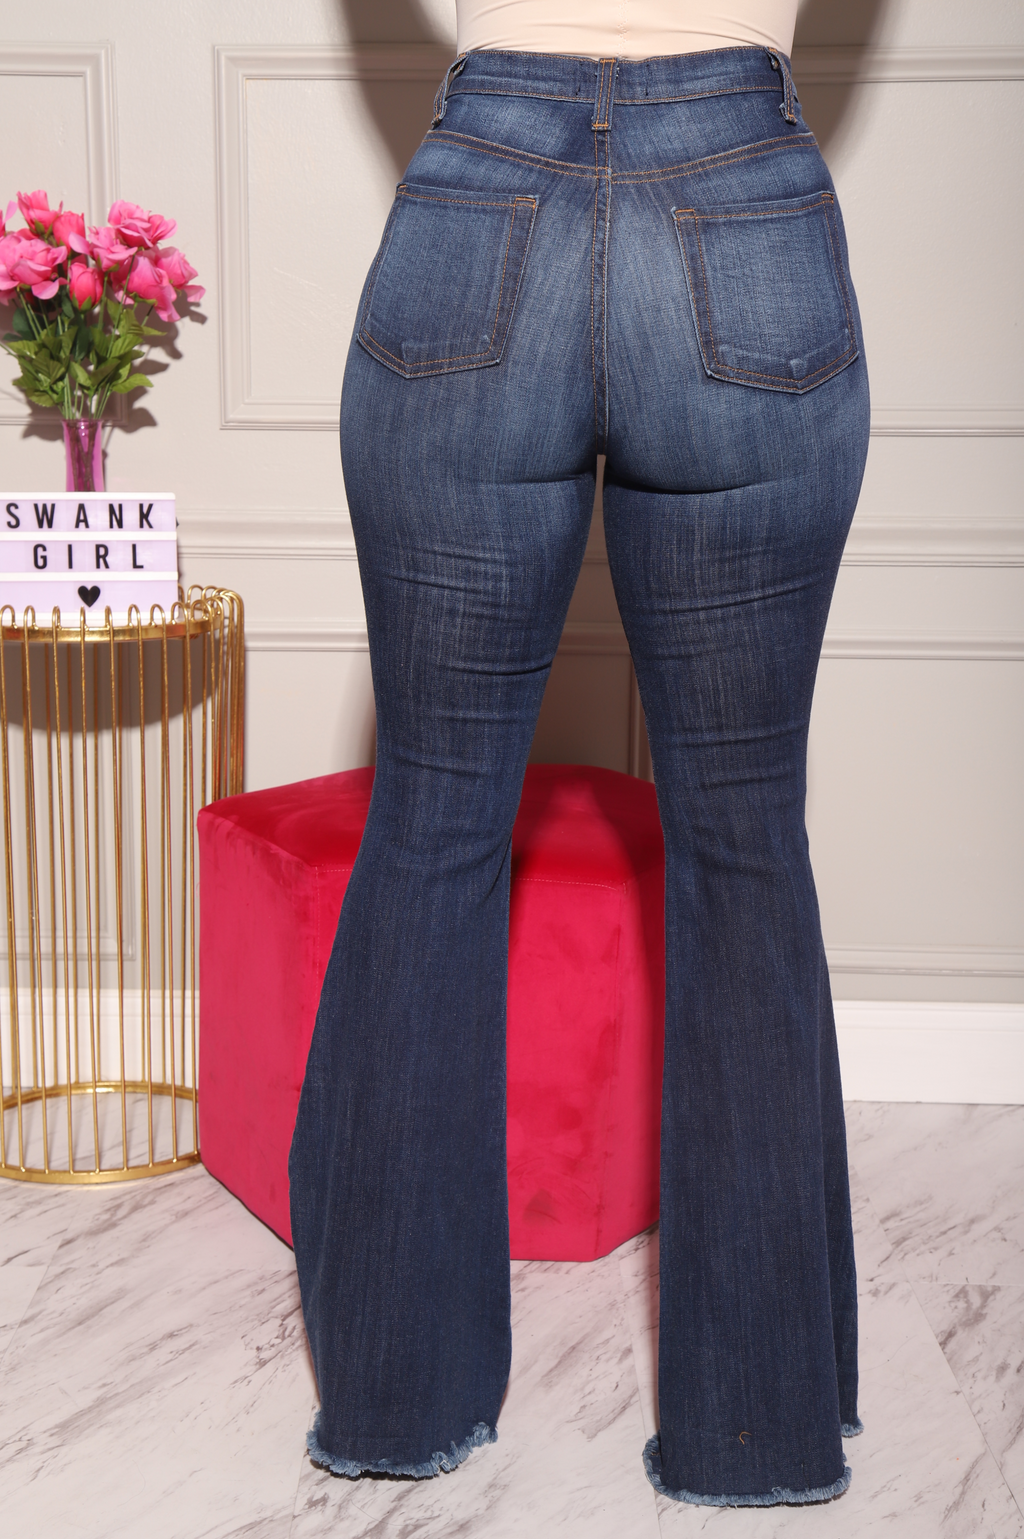 Bout Time Distressed Bell Bottom Jeans - Medium Wash - Swank A Posh